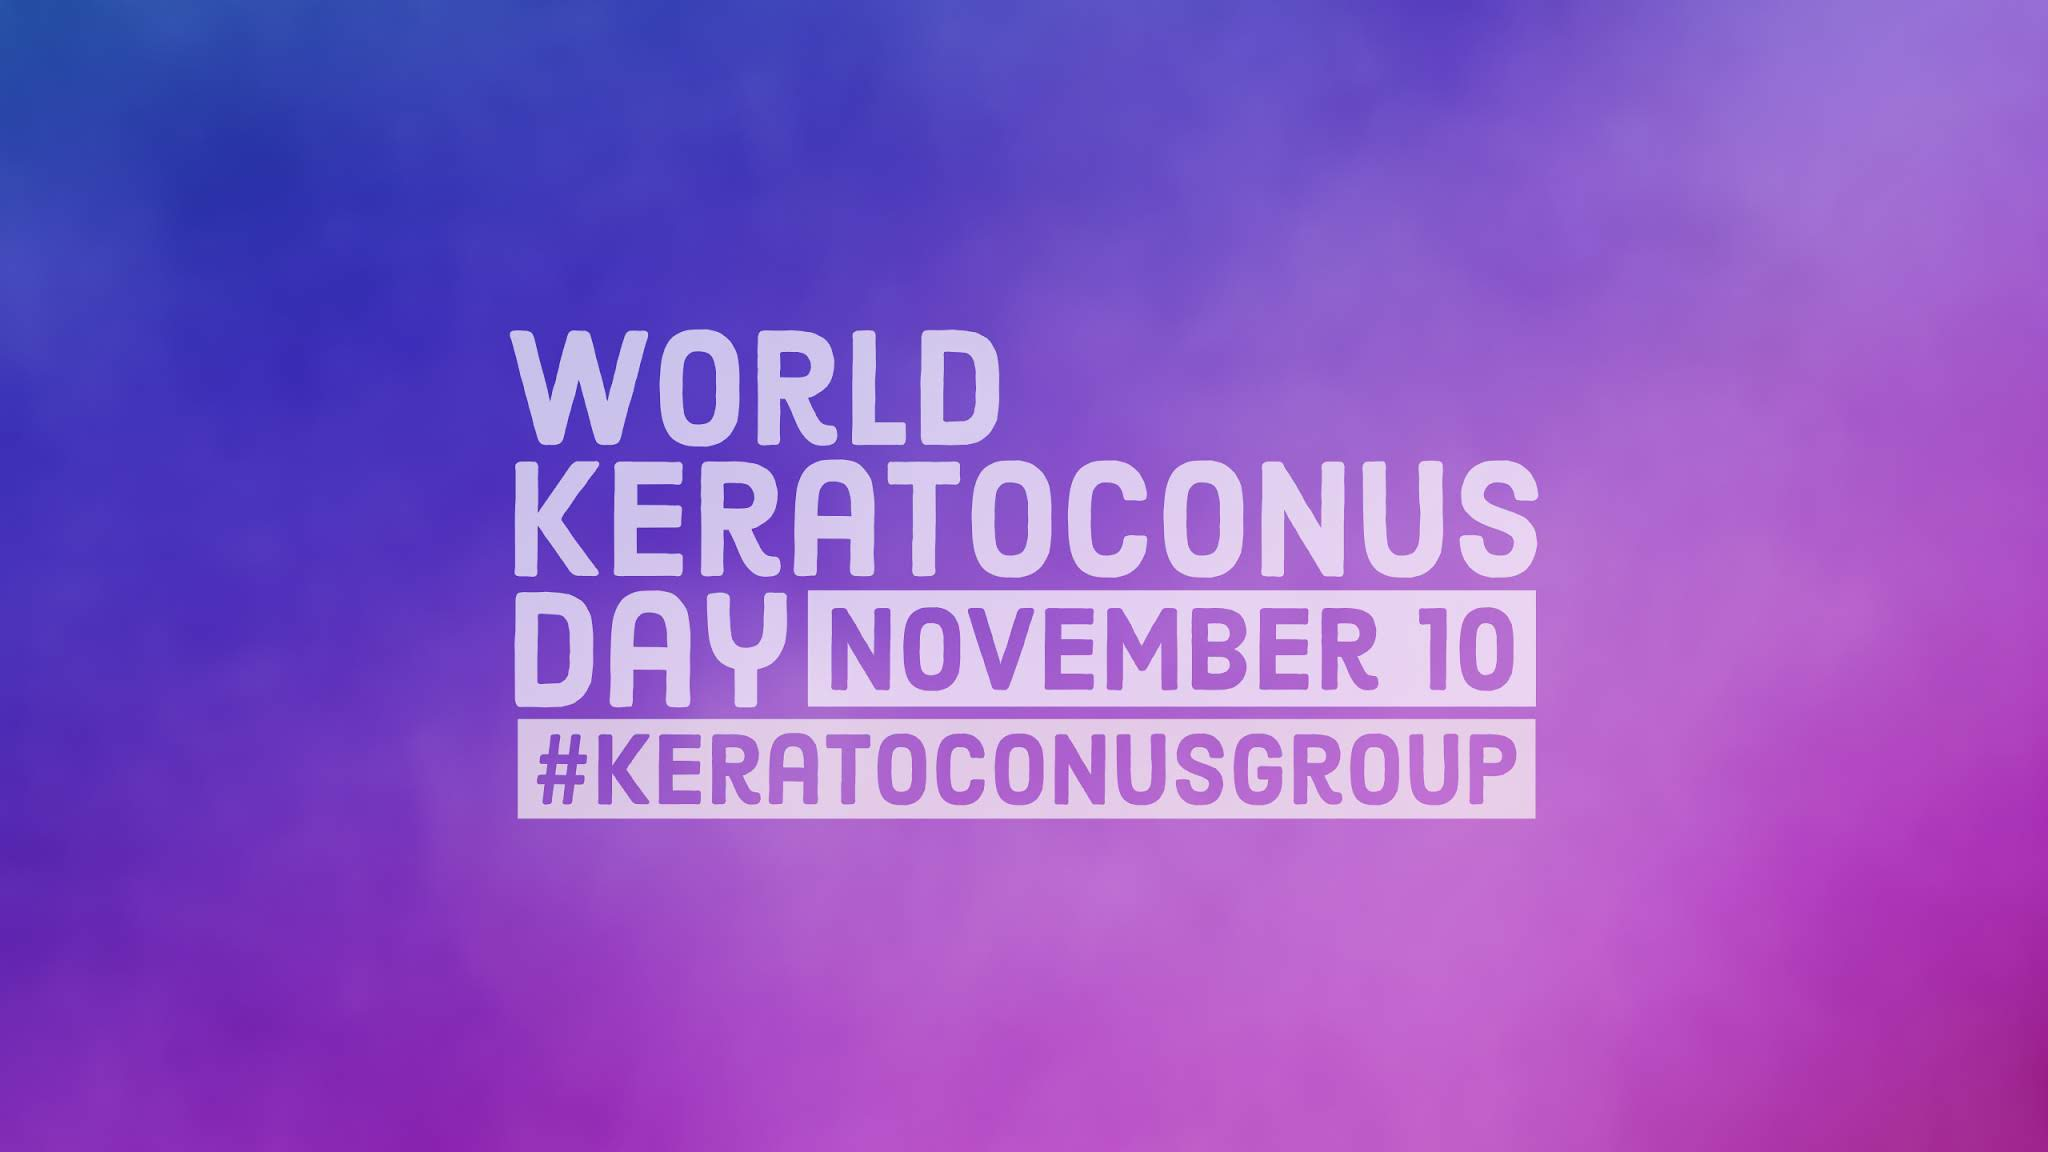 World Keratoconus Day 2018 Desktop or Tablet Wallpaper